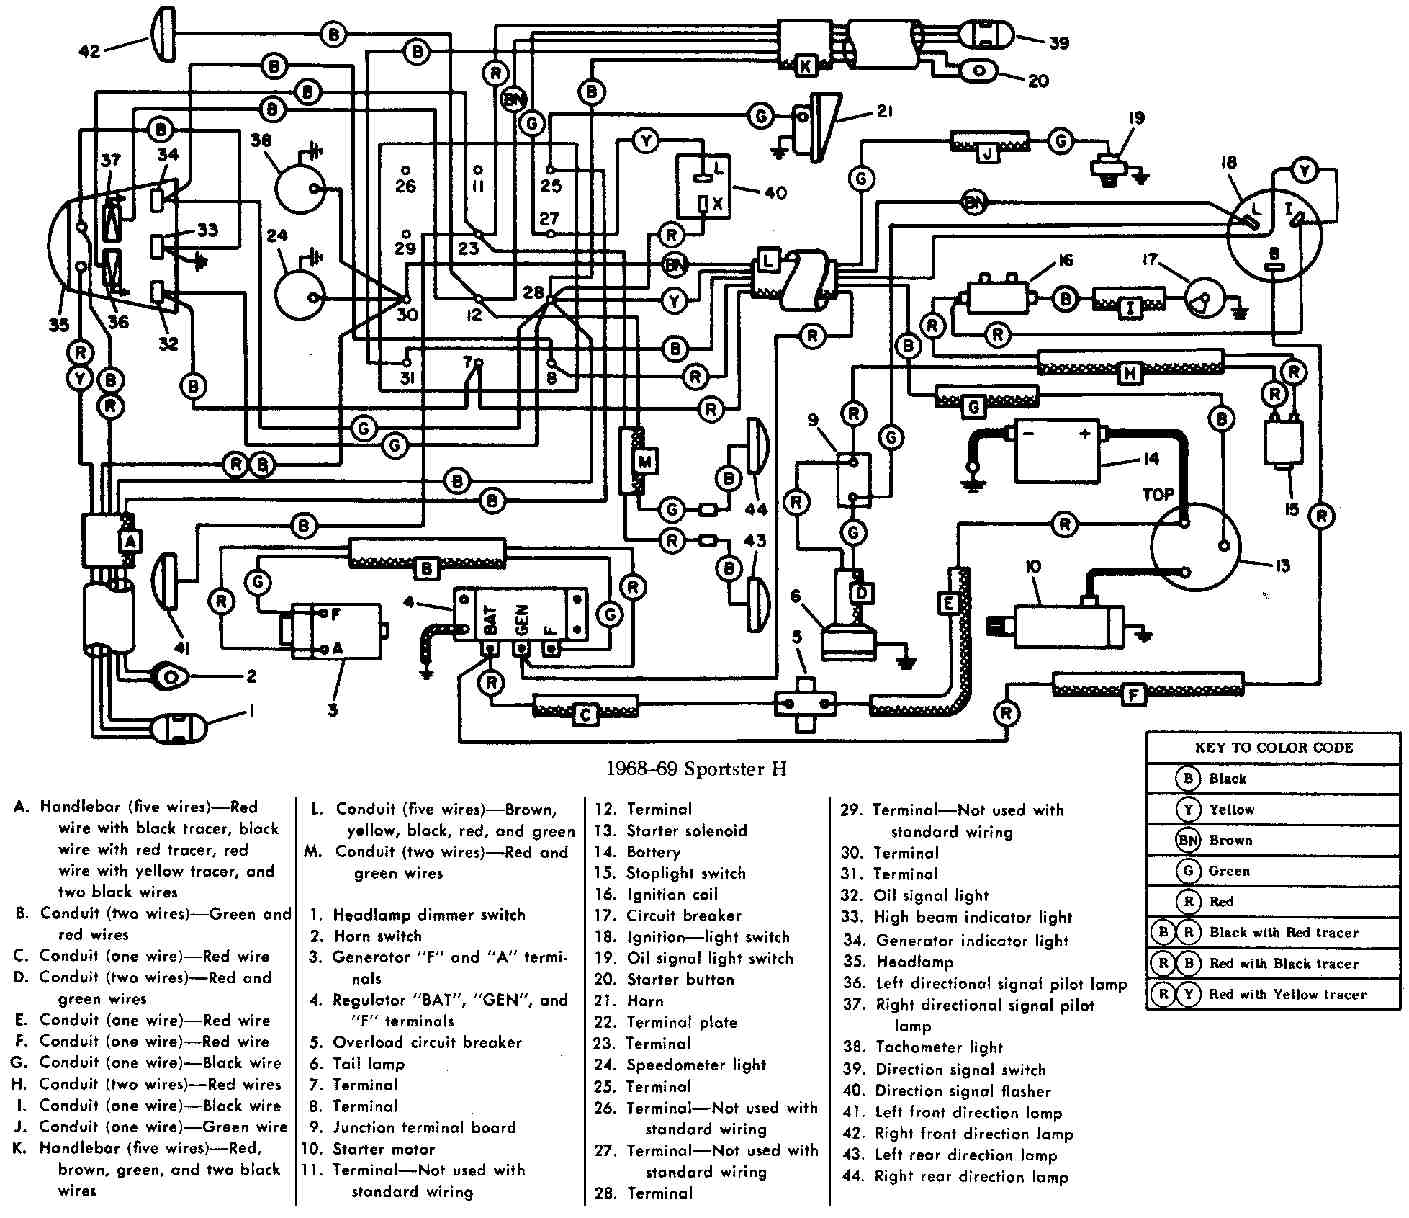 96 Gmc Sonoma Wiring Diagram as well 2003 Tahoe Flasher Relay moreover 1106660 74 78 Wiring Diagrams also Corvette Fuel Pump Relay 1990 1994early together with 31zgm Turn Signal Relay Dodge Intrepid 2001 Relay Location. on 2000 chevy silverado turn signal flasher